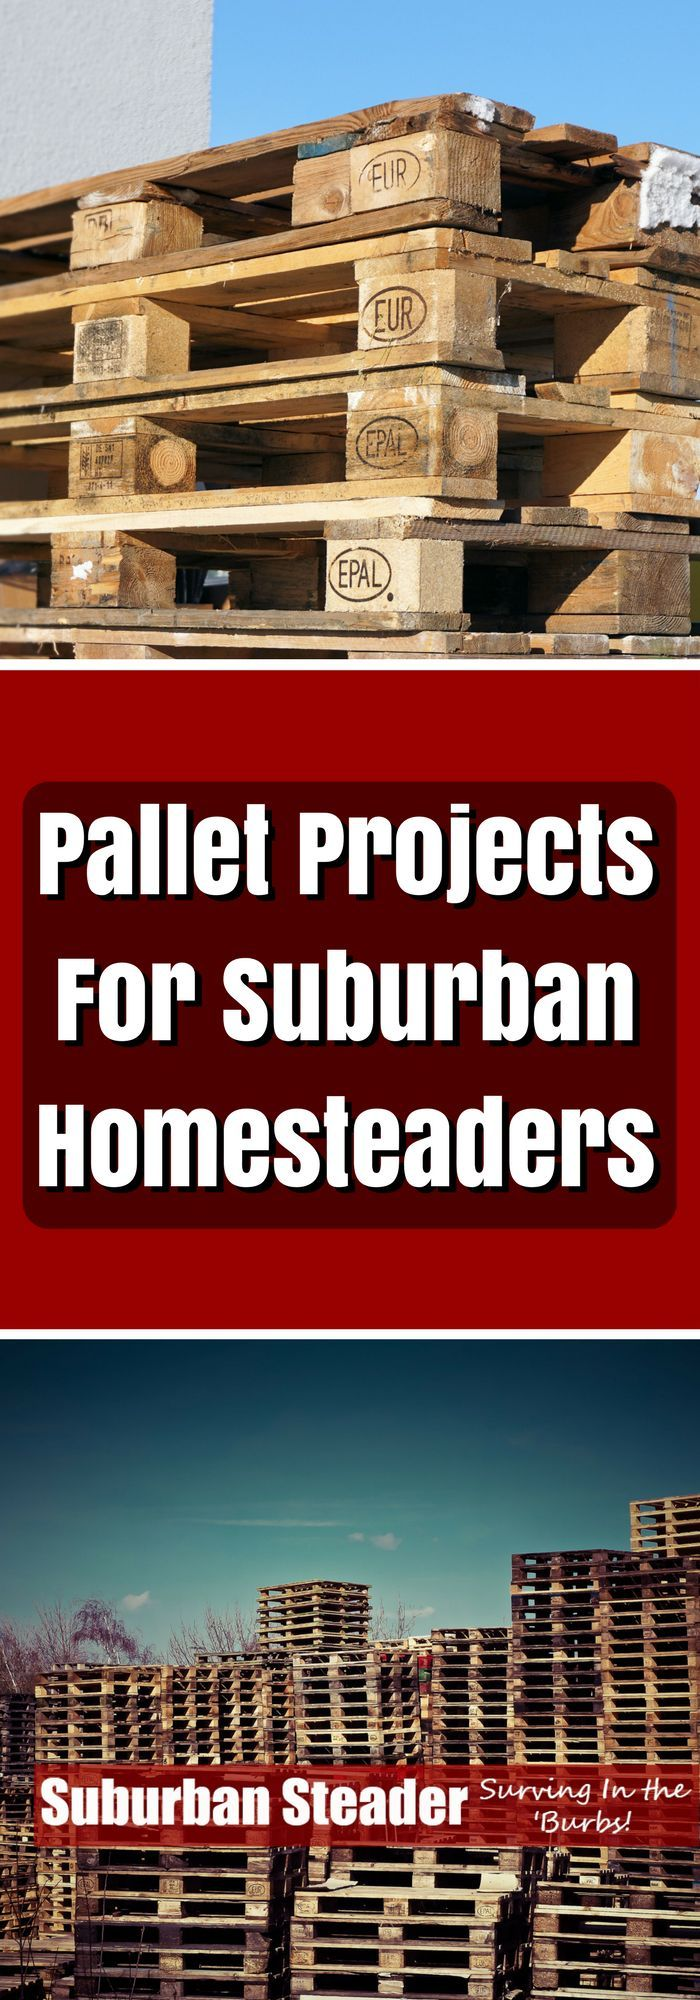 Pallet projects for suburban homesteaders pallet projects pallets pallet projects for suburban homesteaders diy solutioingenieria Images